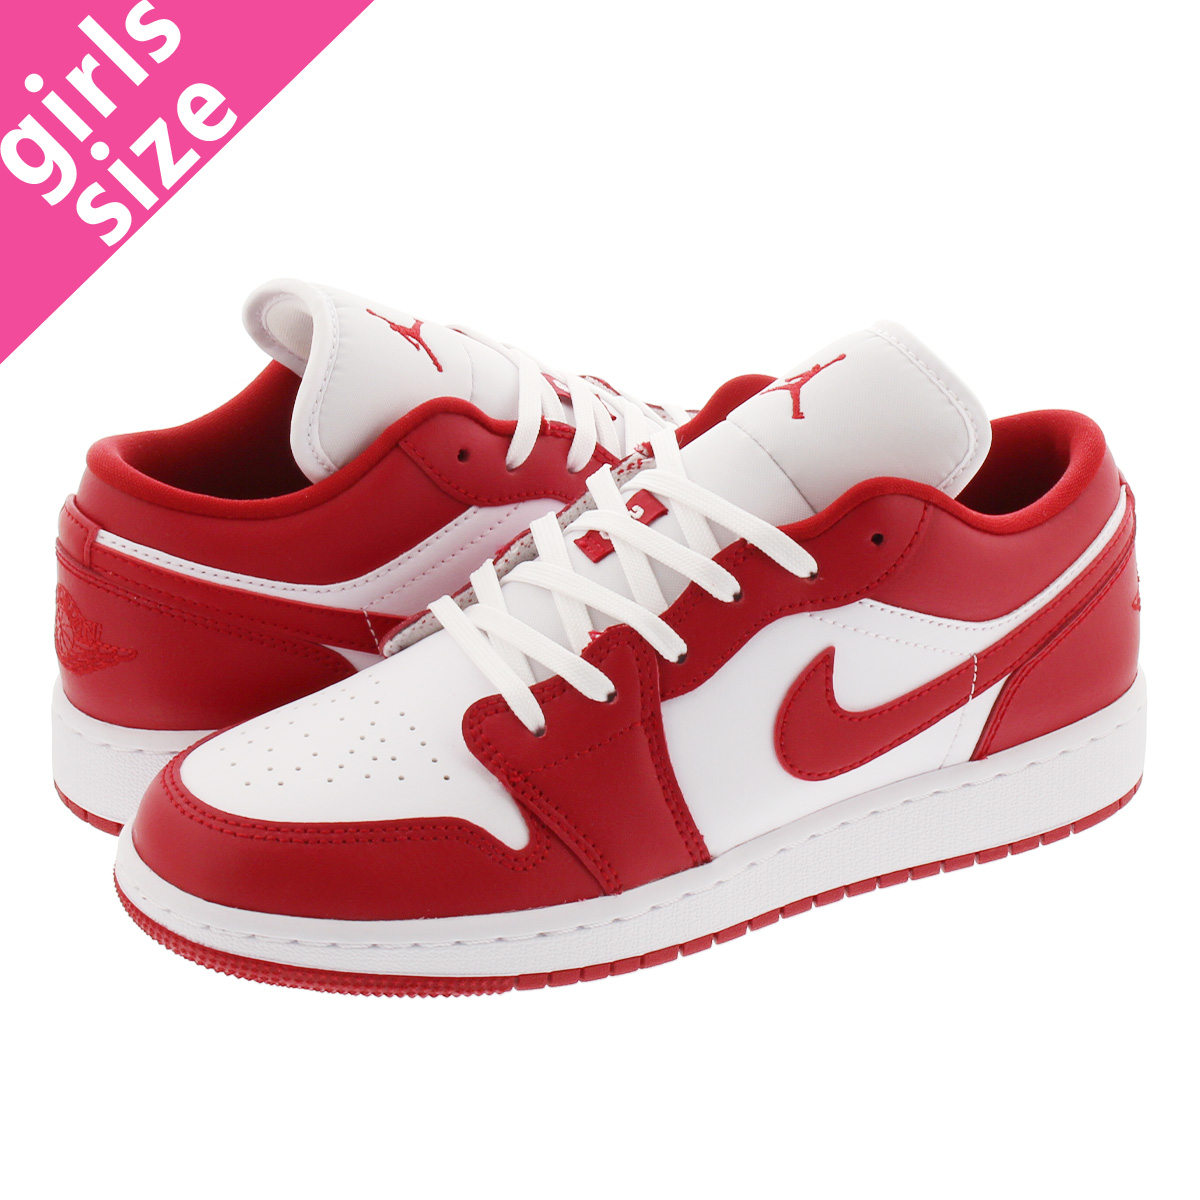 NIKE AIR JORDAN 1 LOW GS ナイキ エア ジョーダン 1 ロー GS GYM RED/WHITE 553560-611